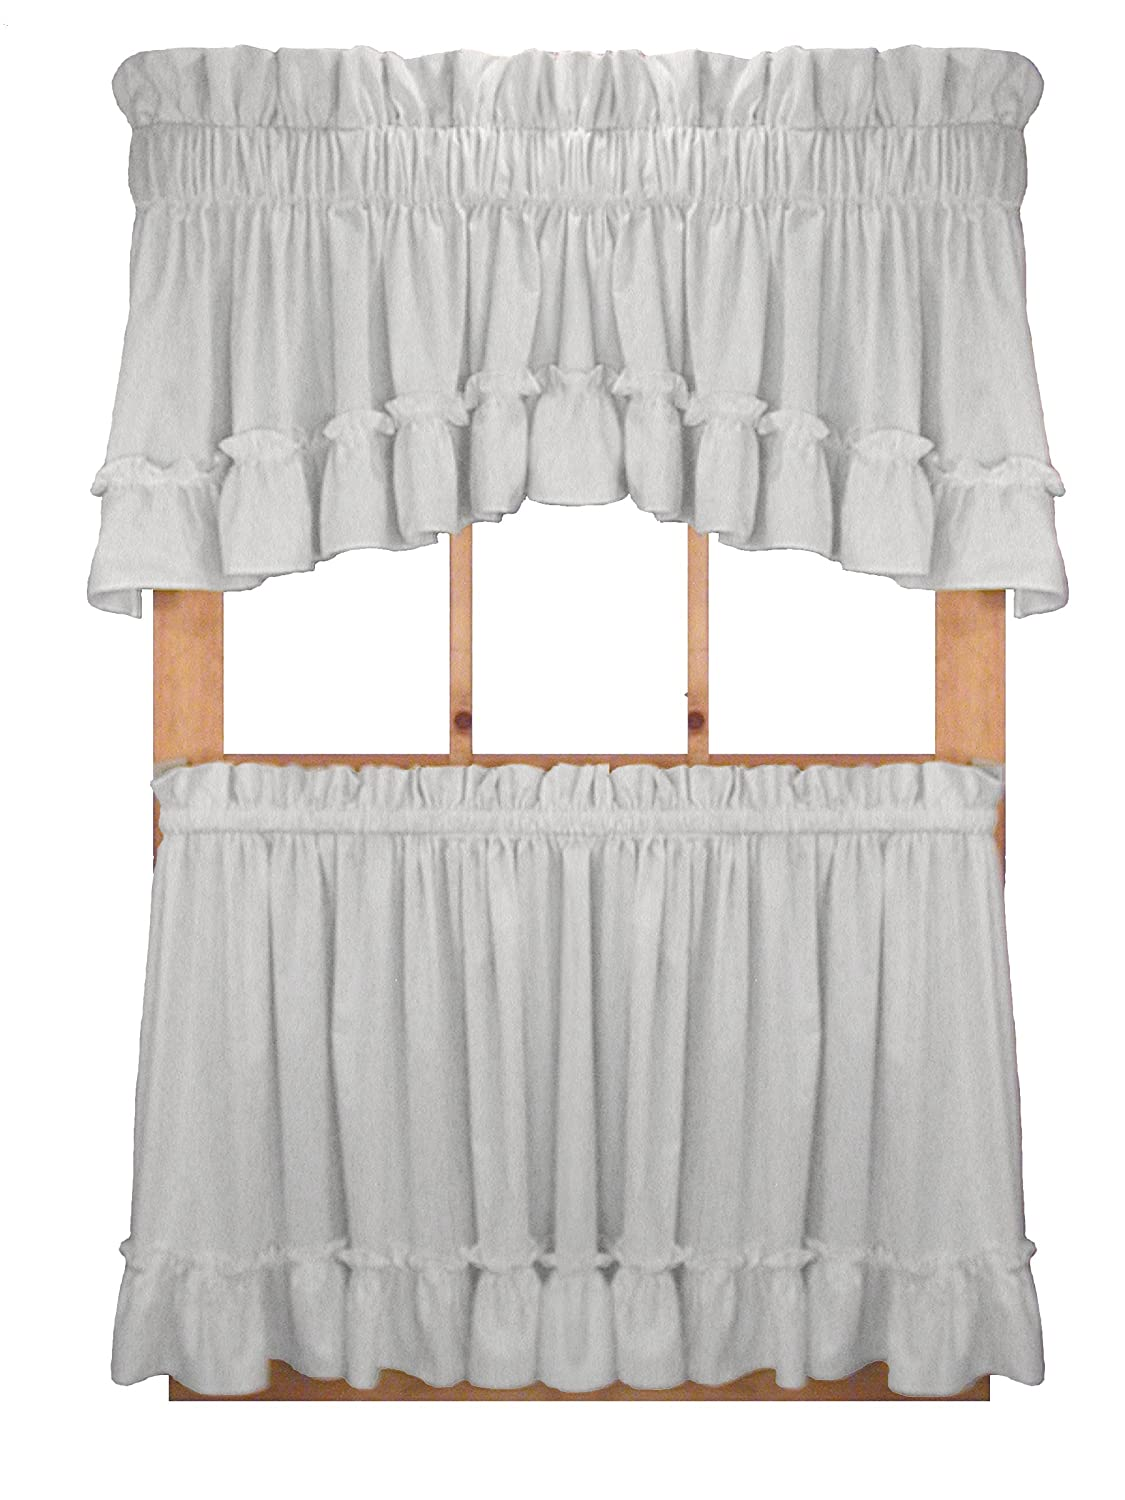 Window Toppers Stephanie Country Style Ruffle Crescent Valance Curtain – 3 Inch Rod Pocket, White